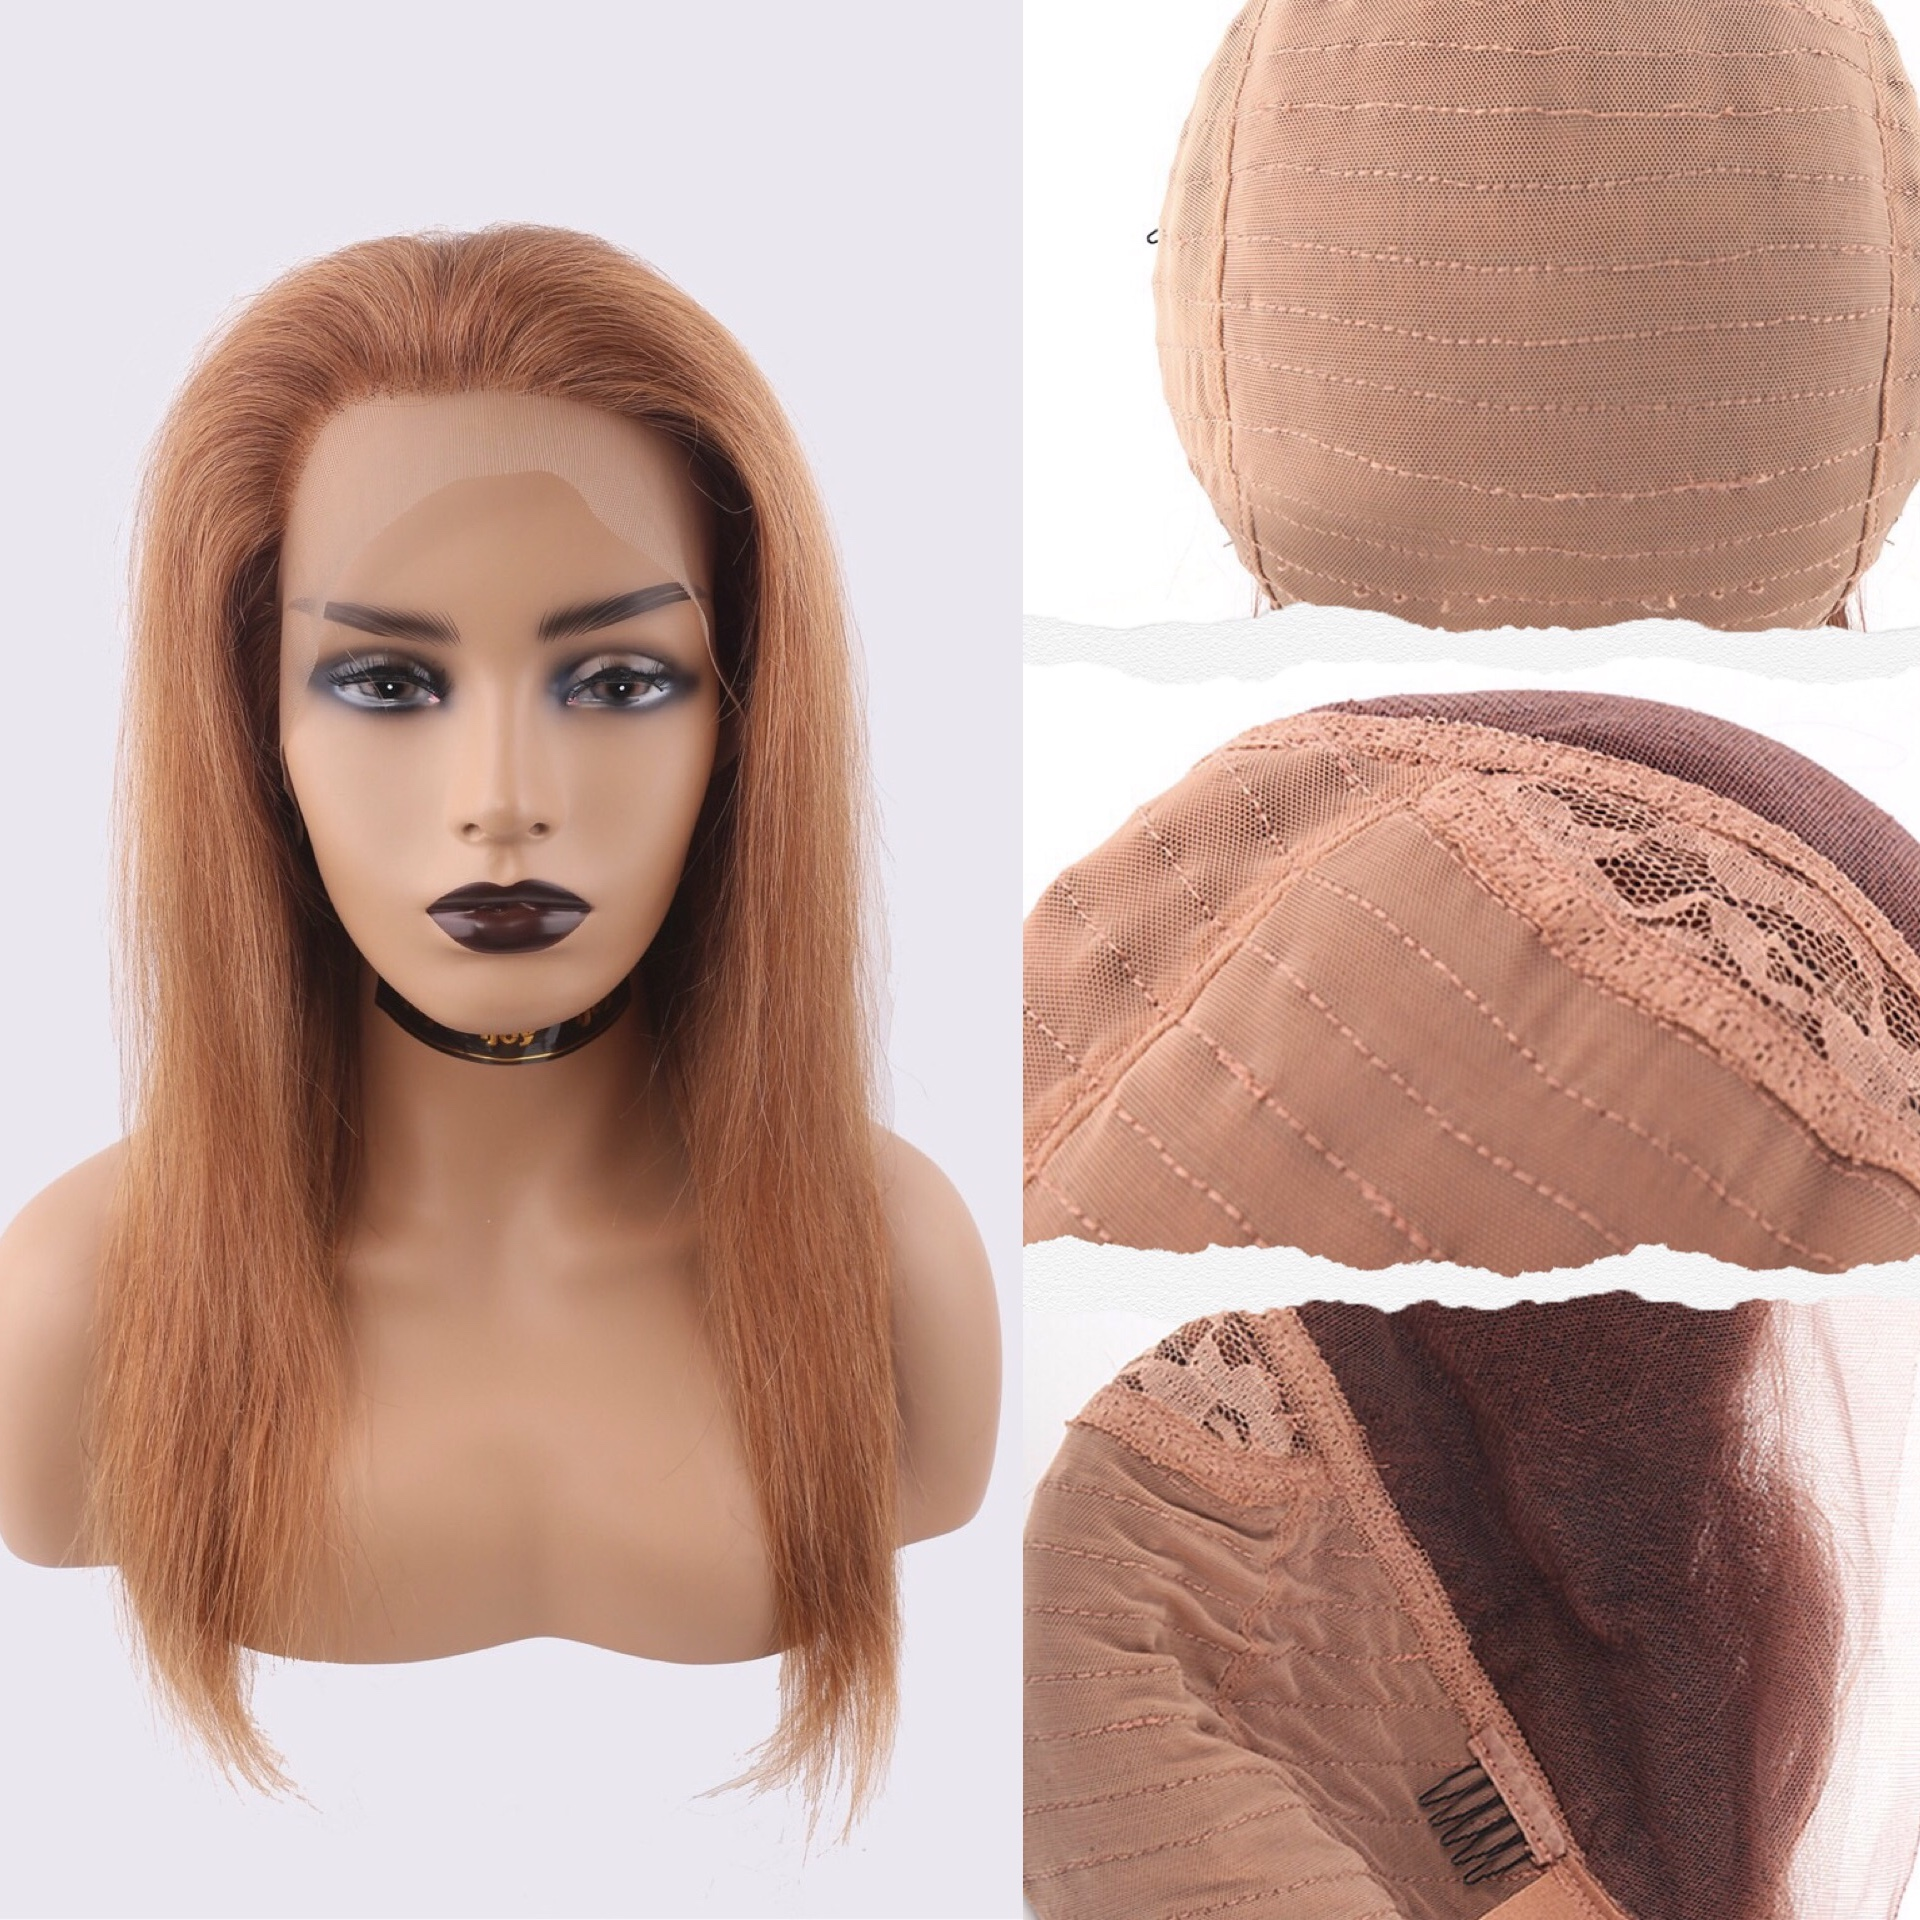 Human Hair Wigs Straight 13×4 Lace Front 16''-26'' #30 Light Brown Non-Remy Brazilian Hair IJOY